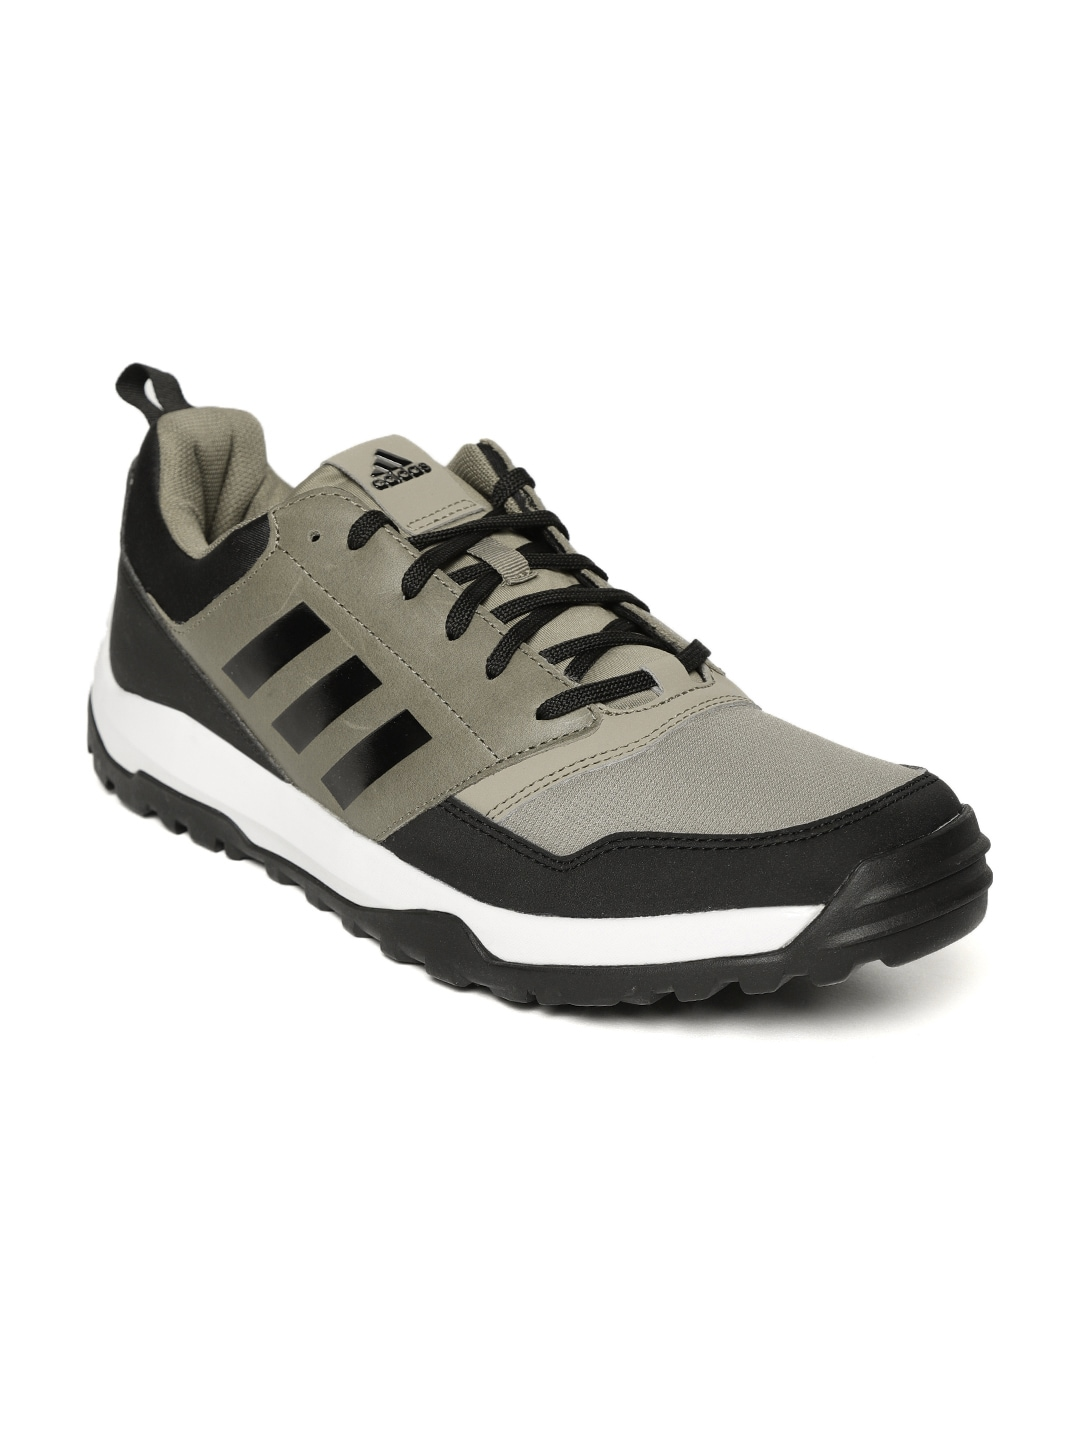 Adidas Men Outdoor Shoes - Buy Adidas Men Outdoor Shoes online in India 820566a92